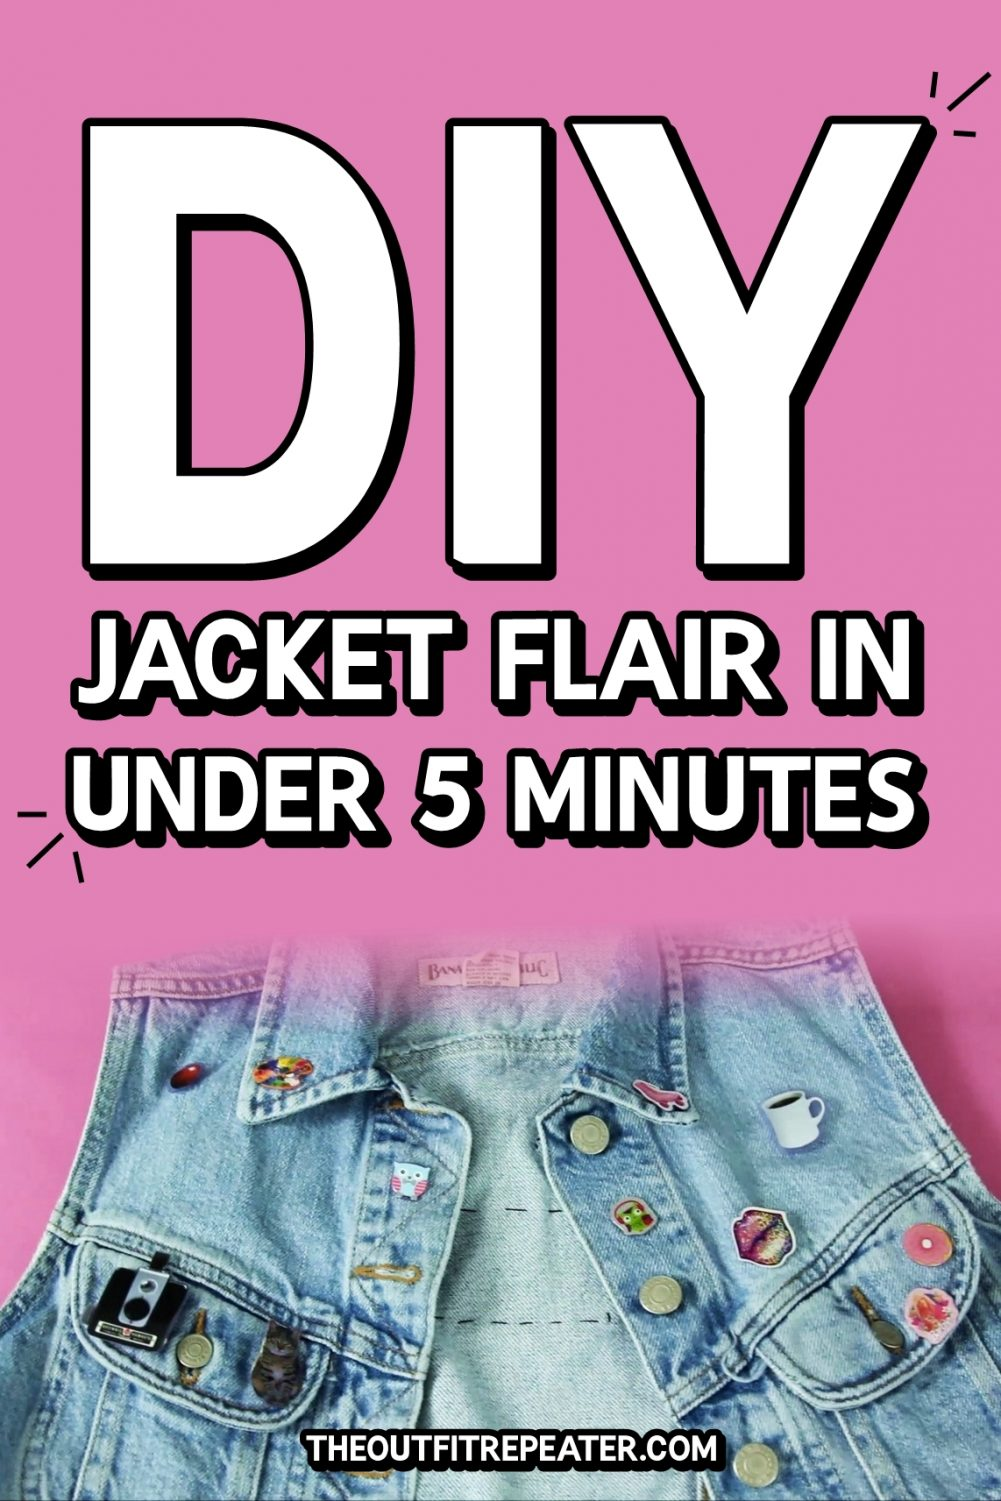 DIY Jacket Flair in Under 5 Minutes